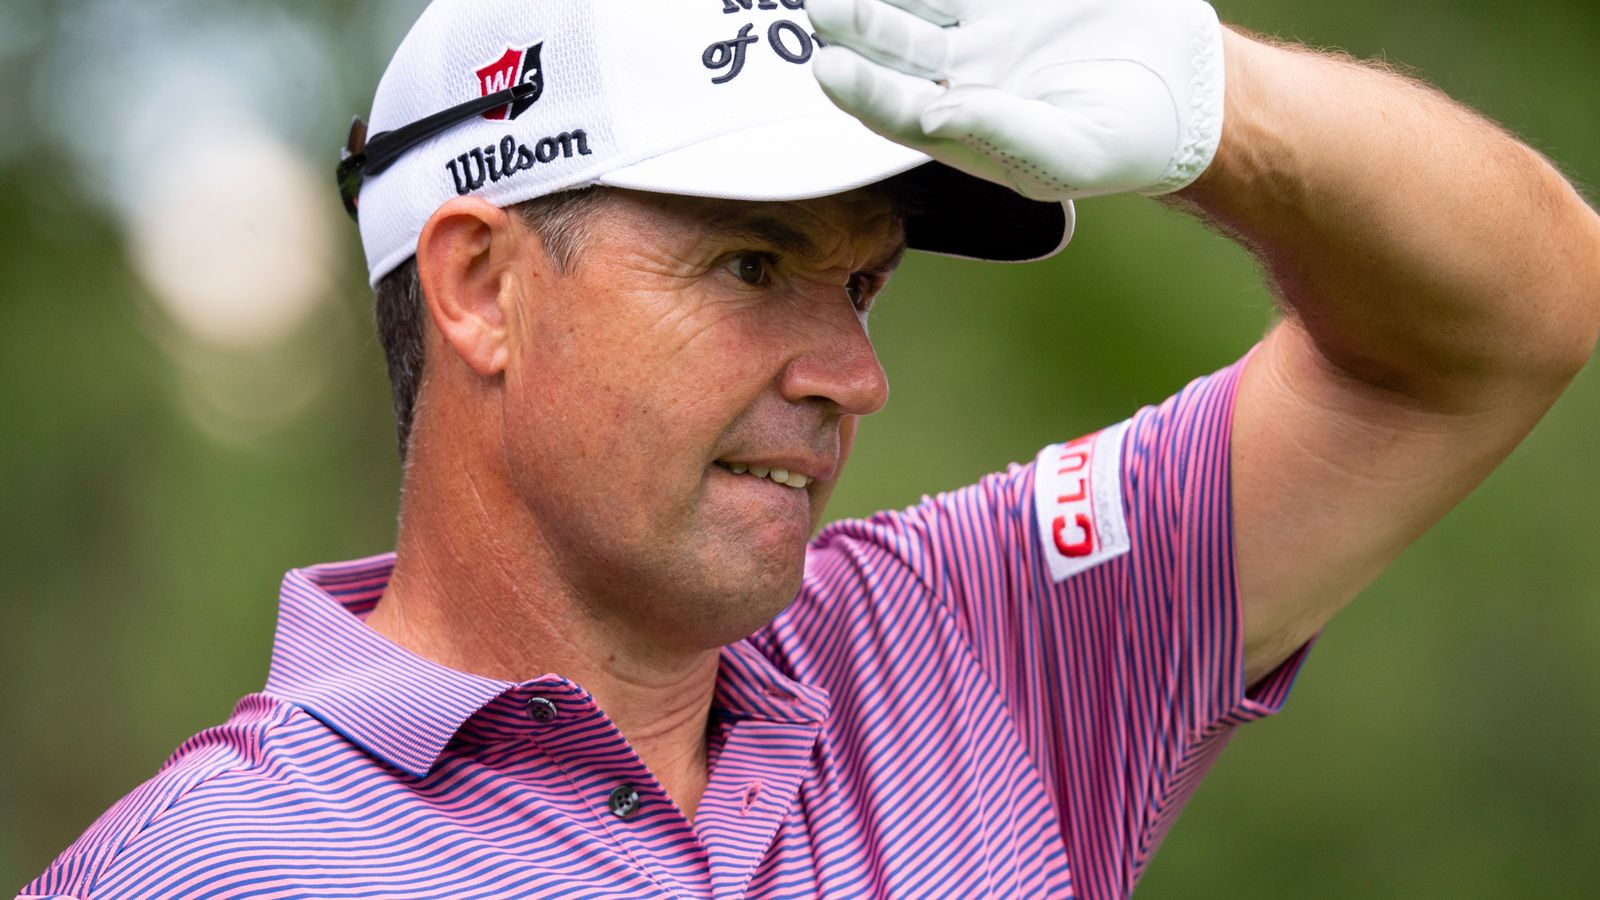 Ryder Cup 2020: Padraig Harrington excited by 'well balanced' Team Europe ahead of trophy defence